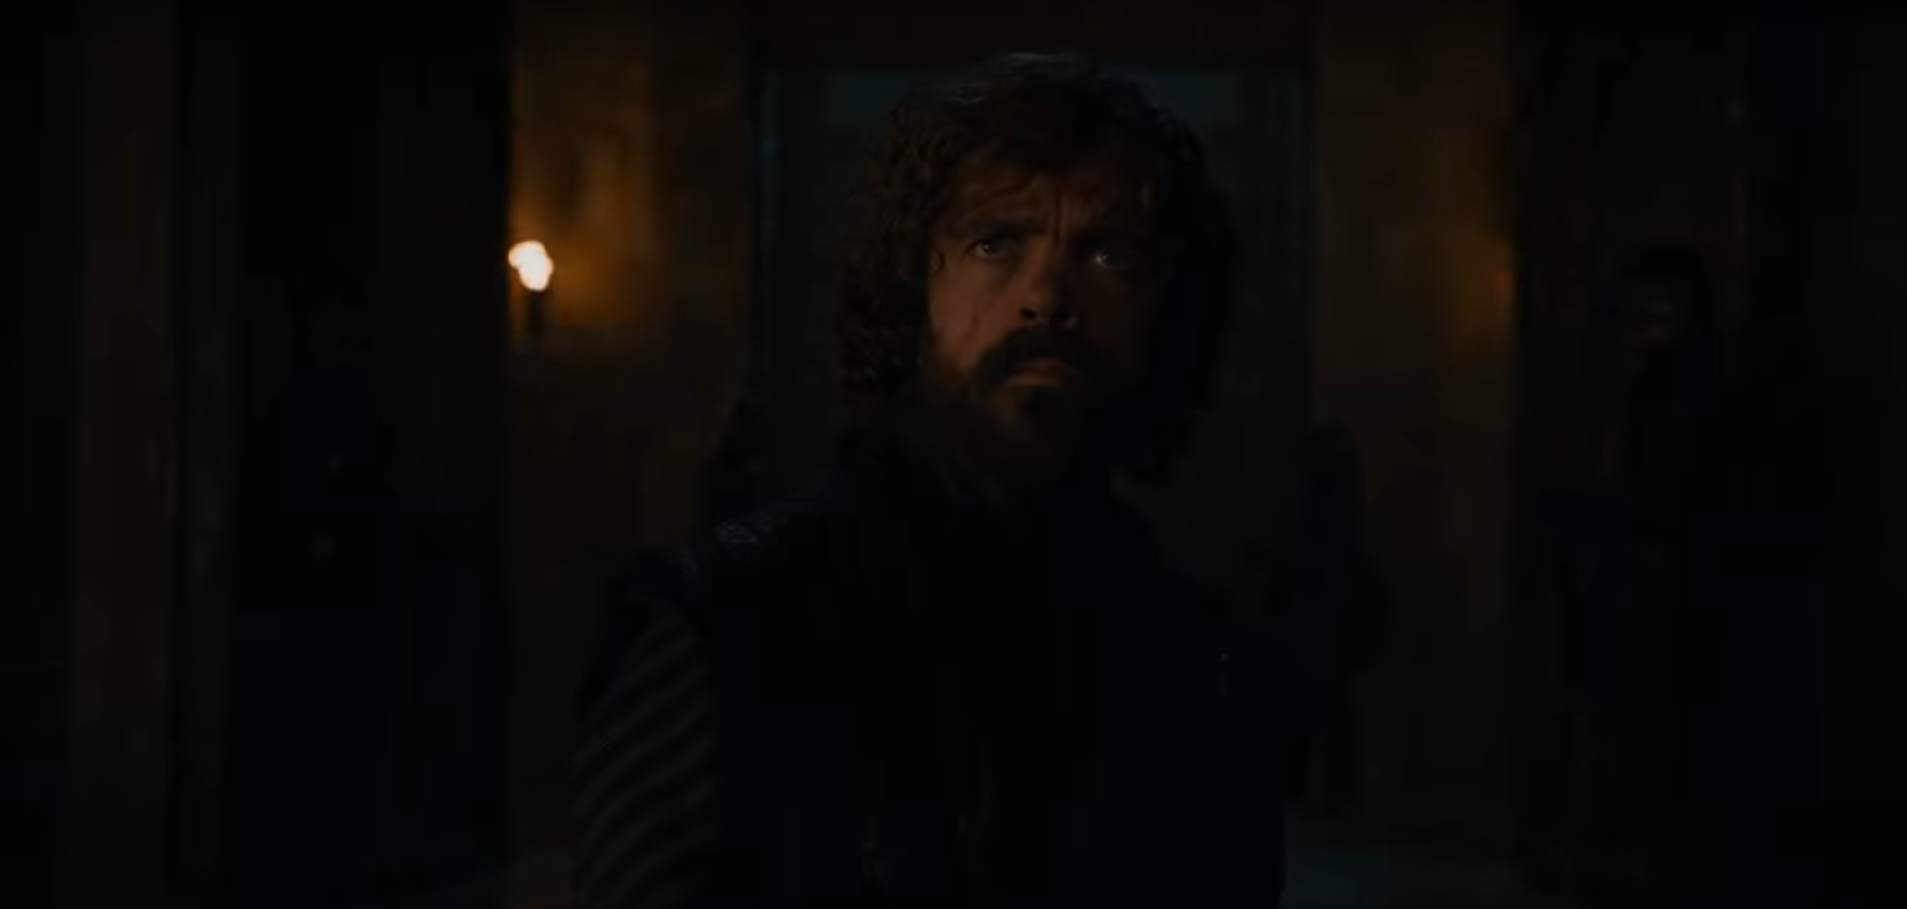 Game of Thrones tyrion doute